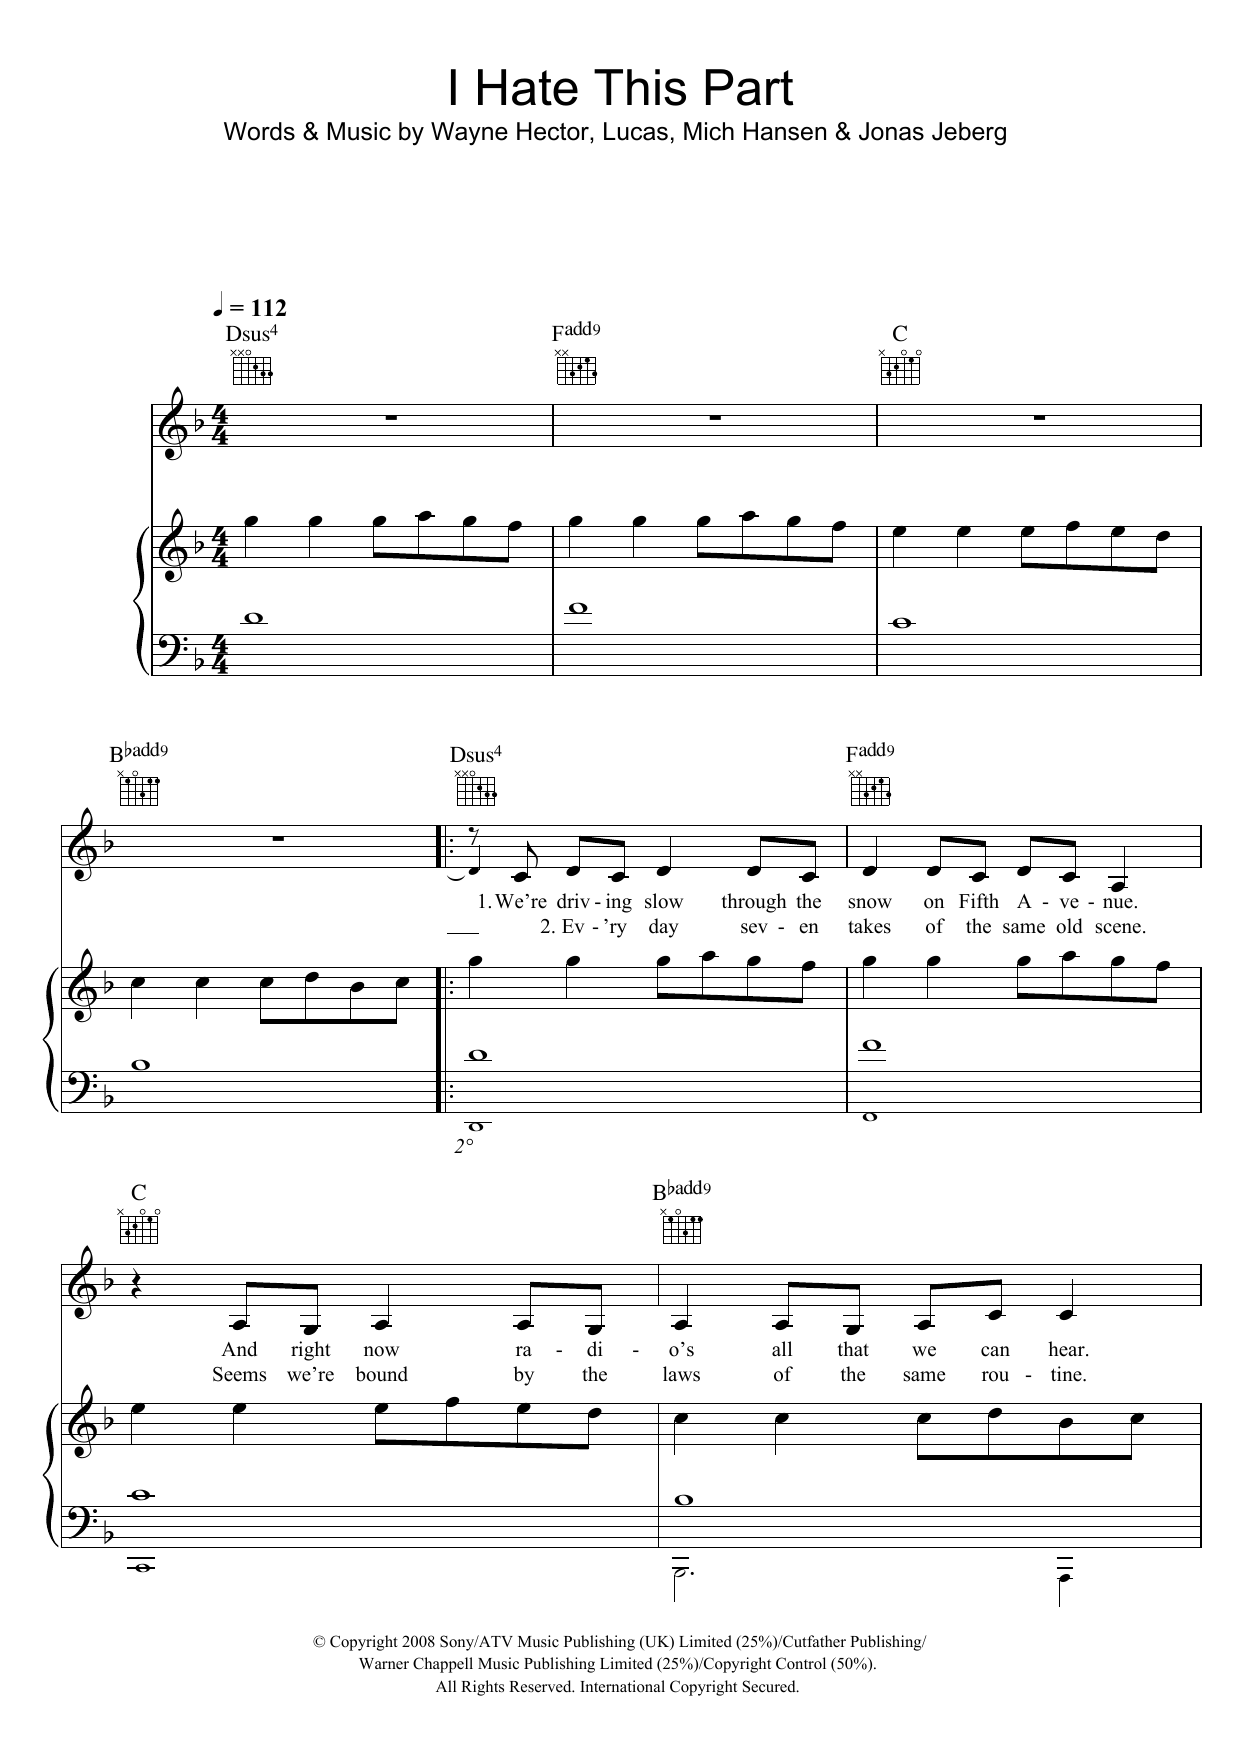 I Hate This Part Sheet Music